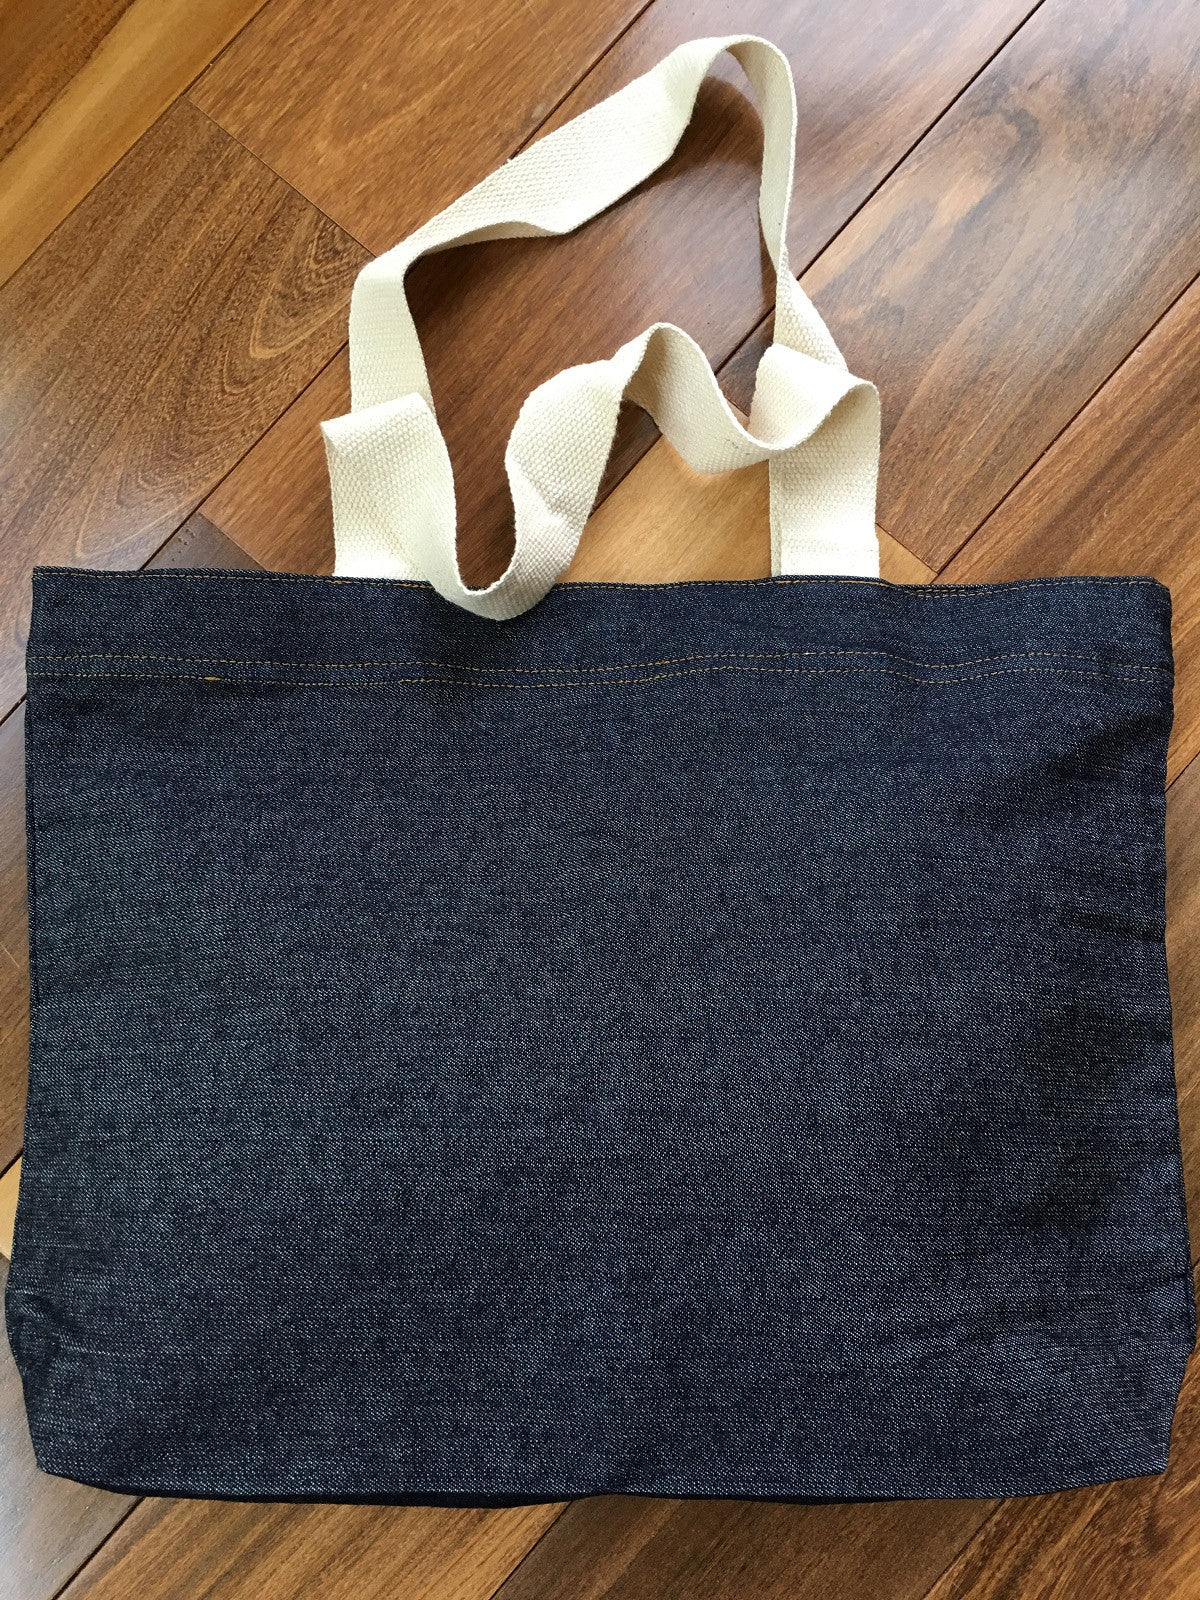 Denim Tote with Magnet Closure